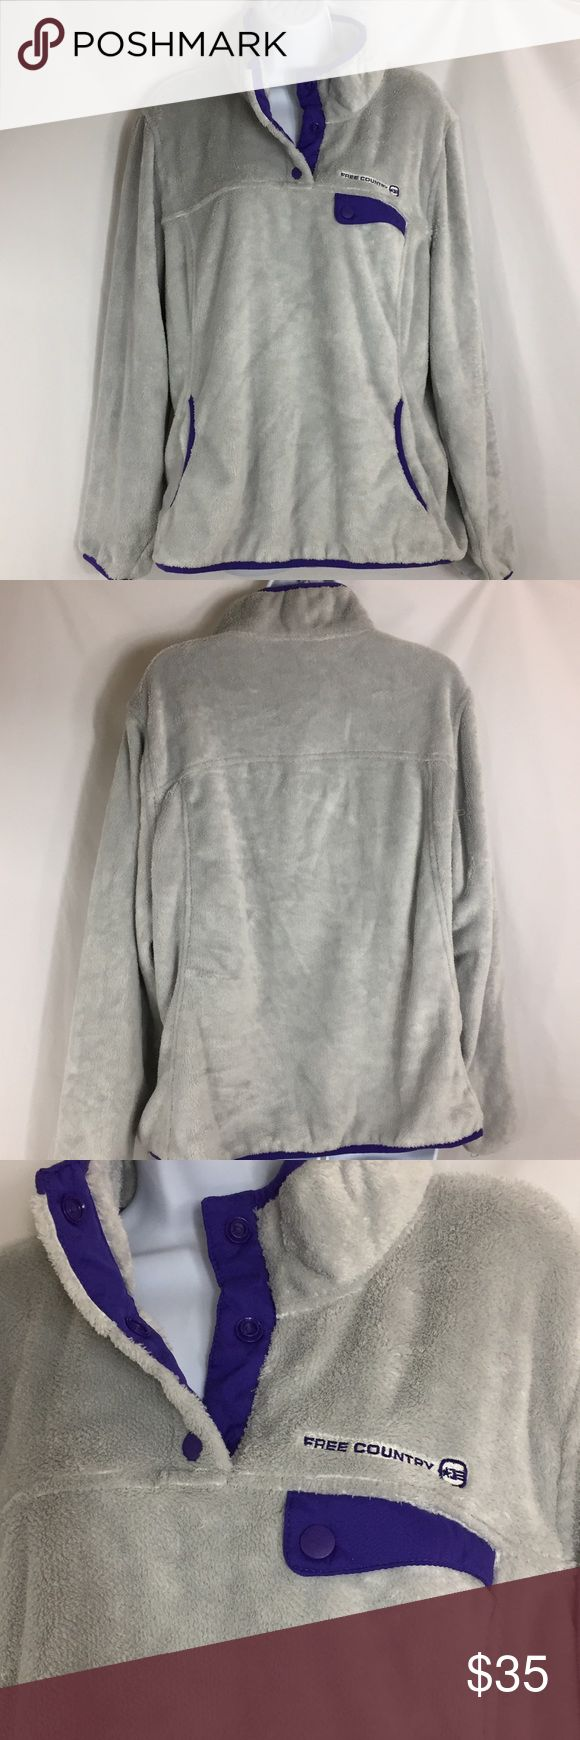 Free Country Micro Plush Jacket Size XXL NWOT NWOT Light gray and purple  Hand warmer pocket Snap pocket on chest Snap opening  Stretchy band around wrist and hem Please see pictures for materials, care and measurements. 7A Free Country Jackets & Coats